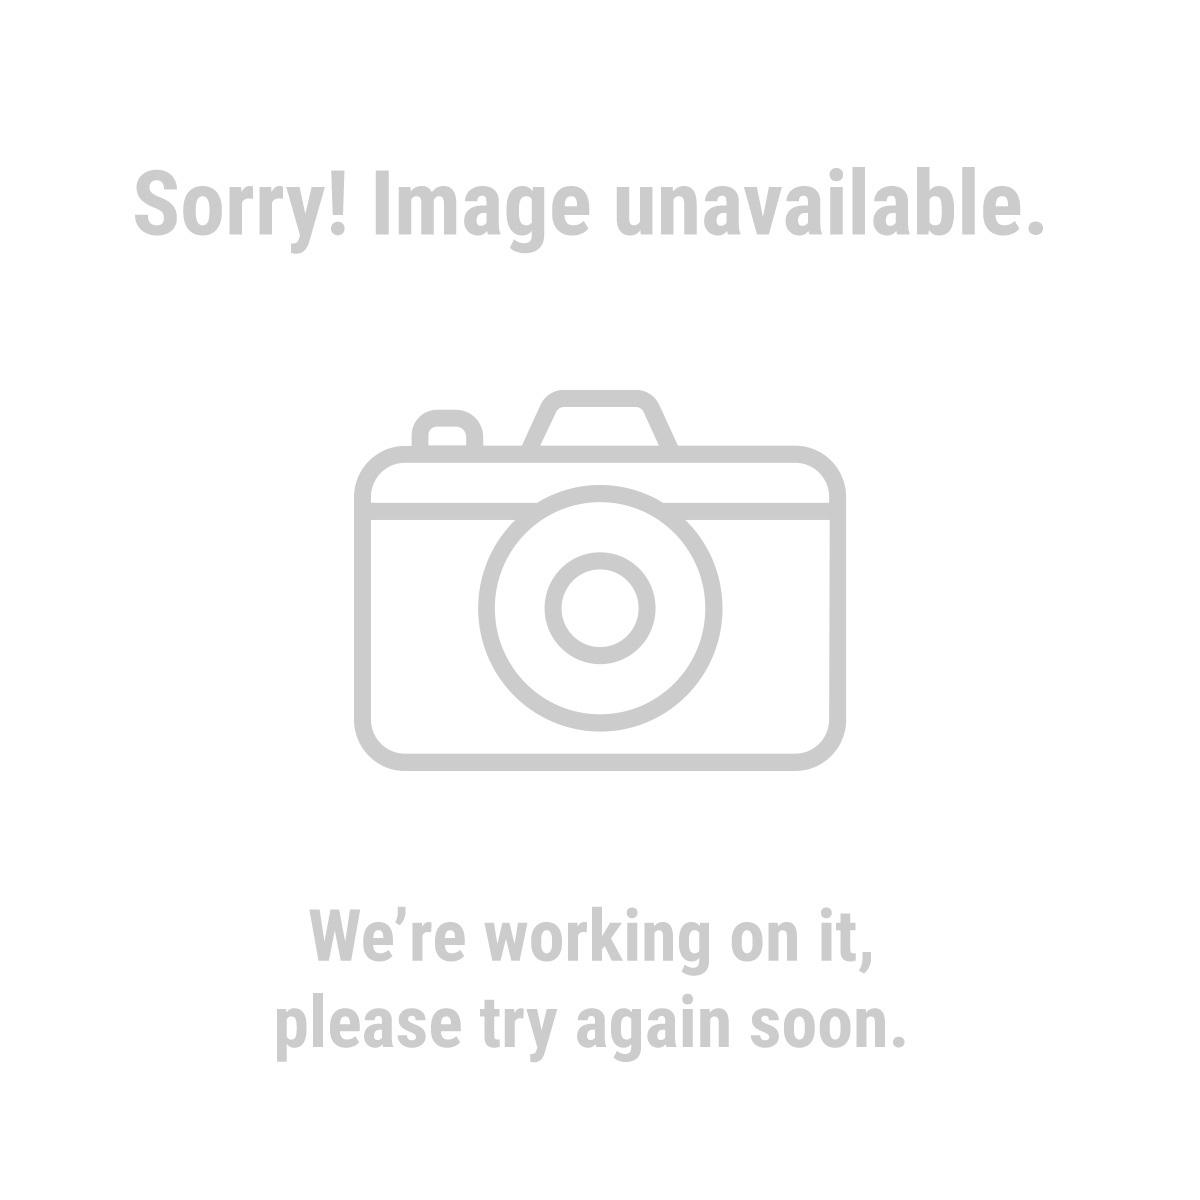 HARDY 61437 Latex Coated X-Large Work Gloves